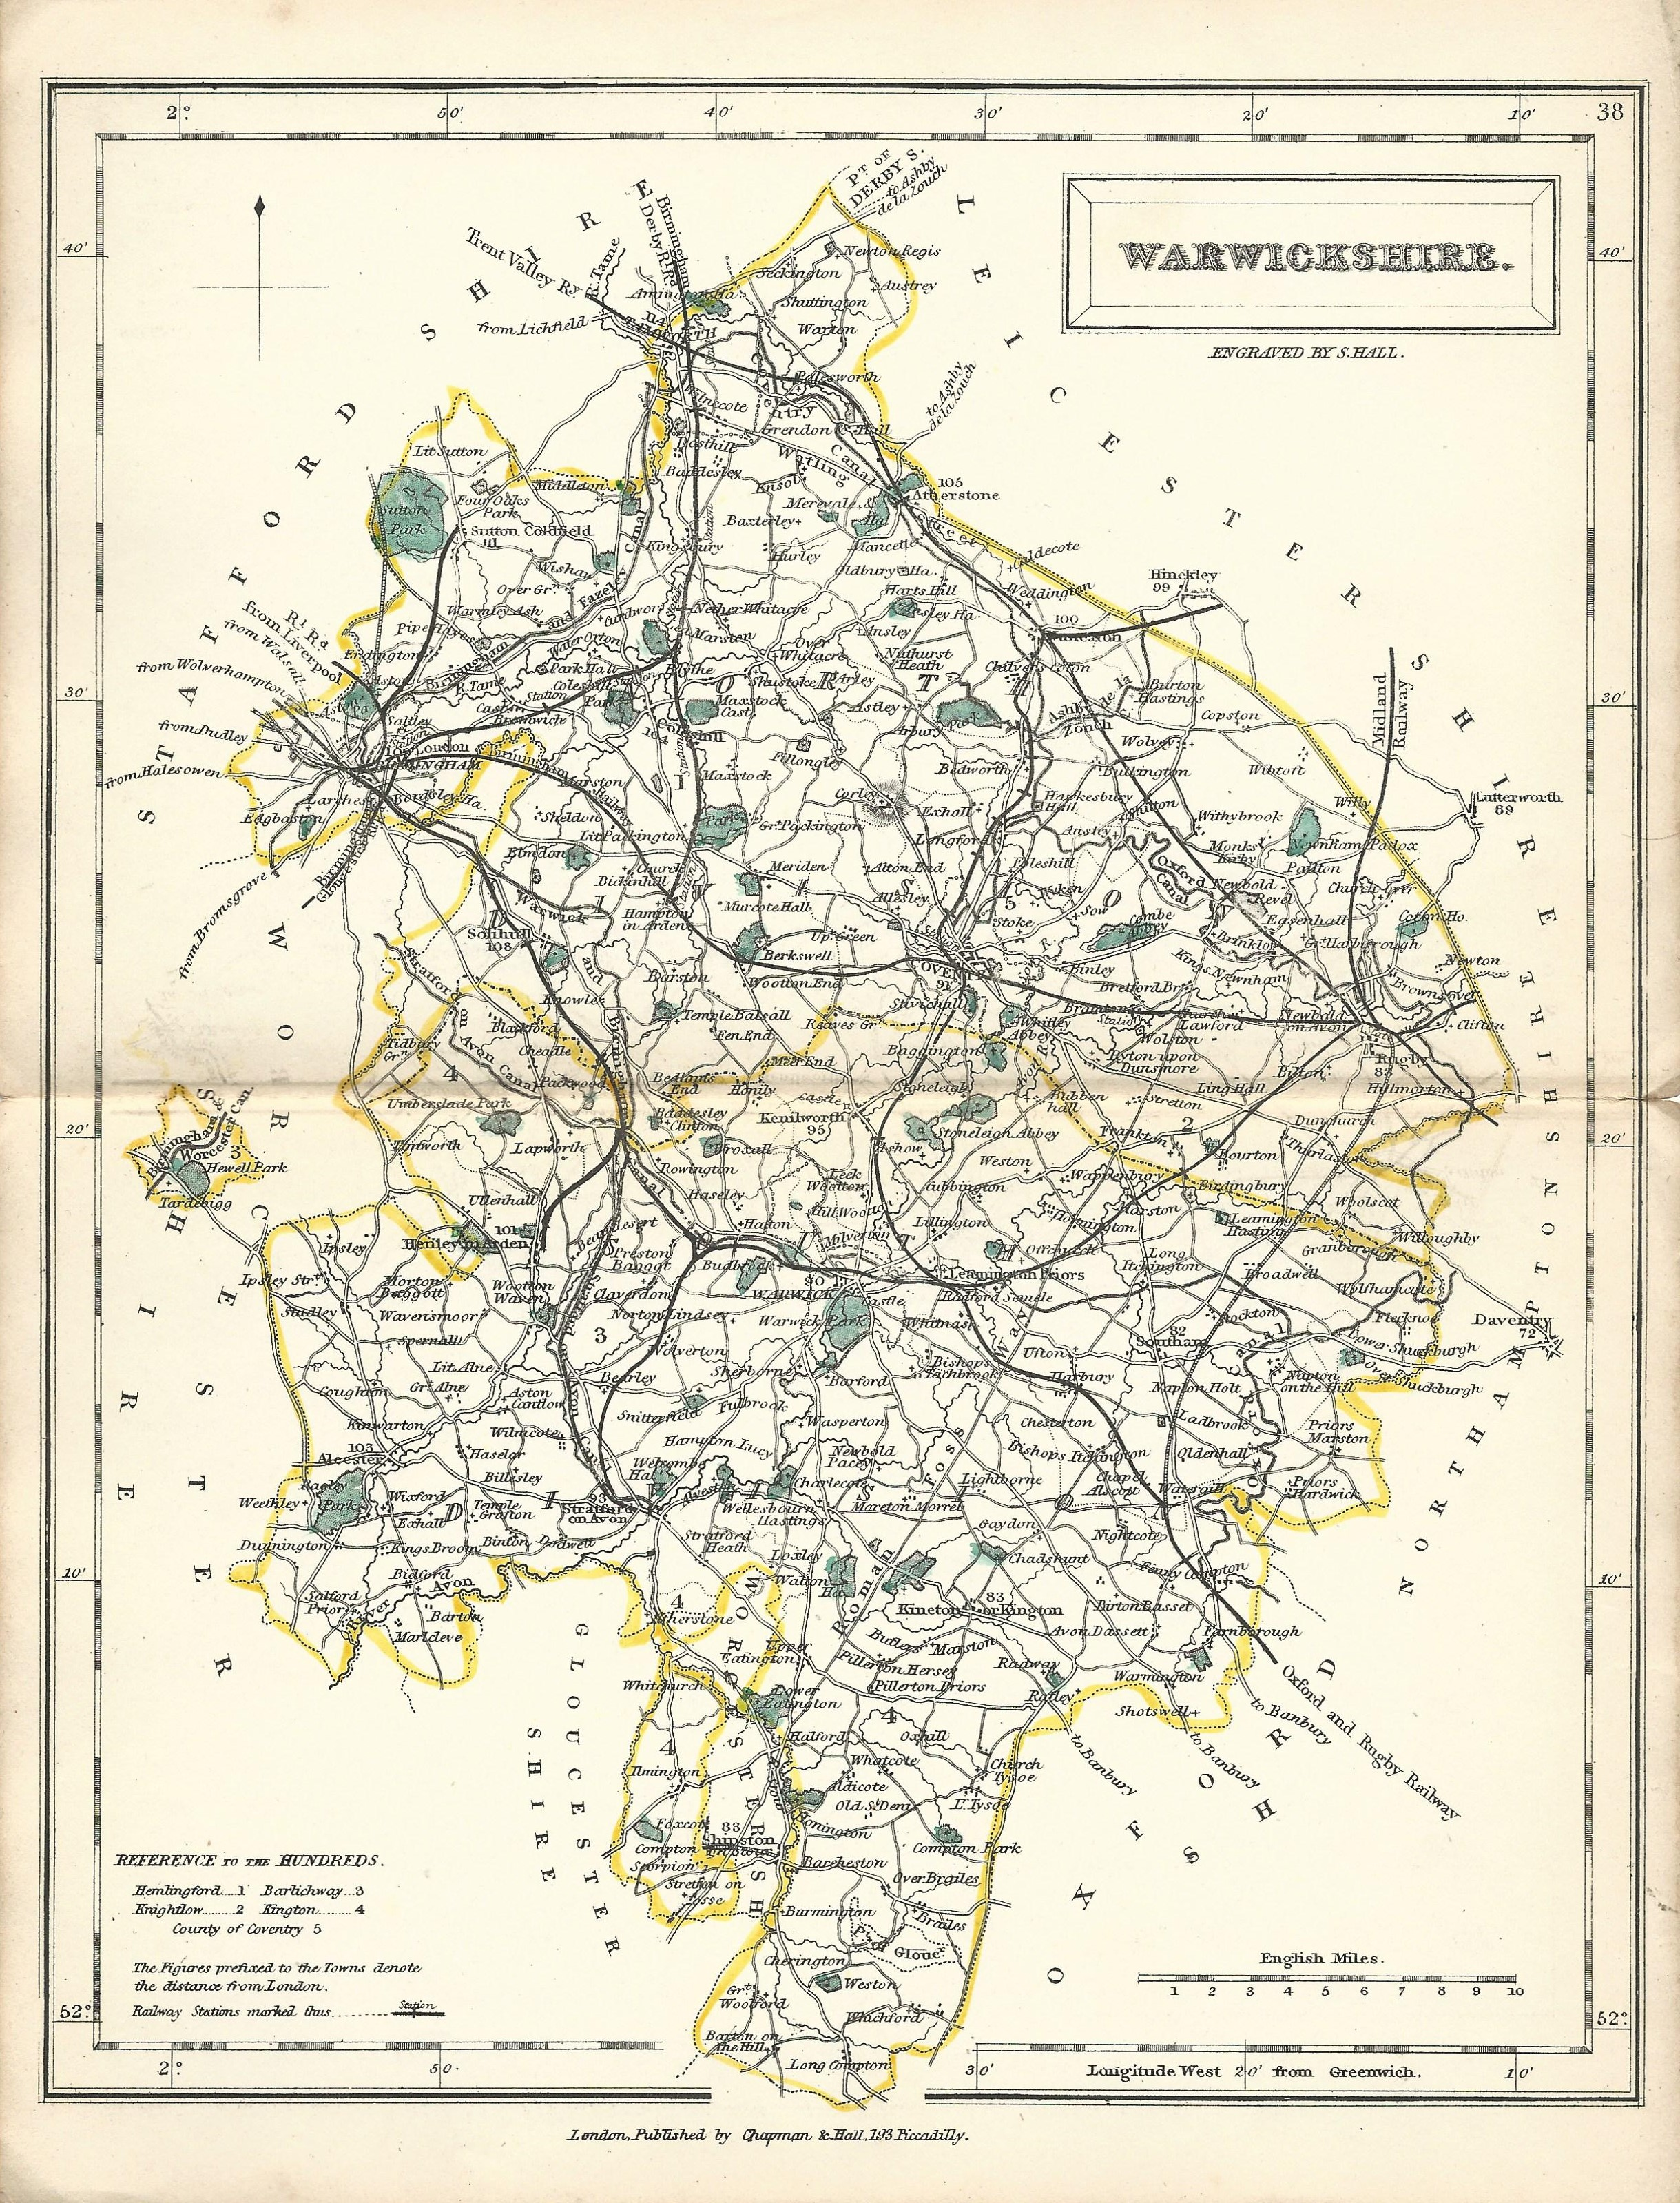 Warwickshire antique map from English Counties 1860 - Frontispiece